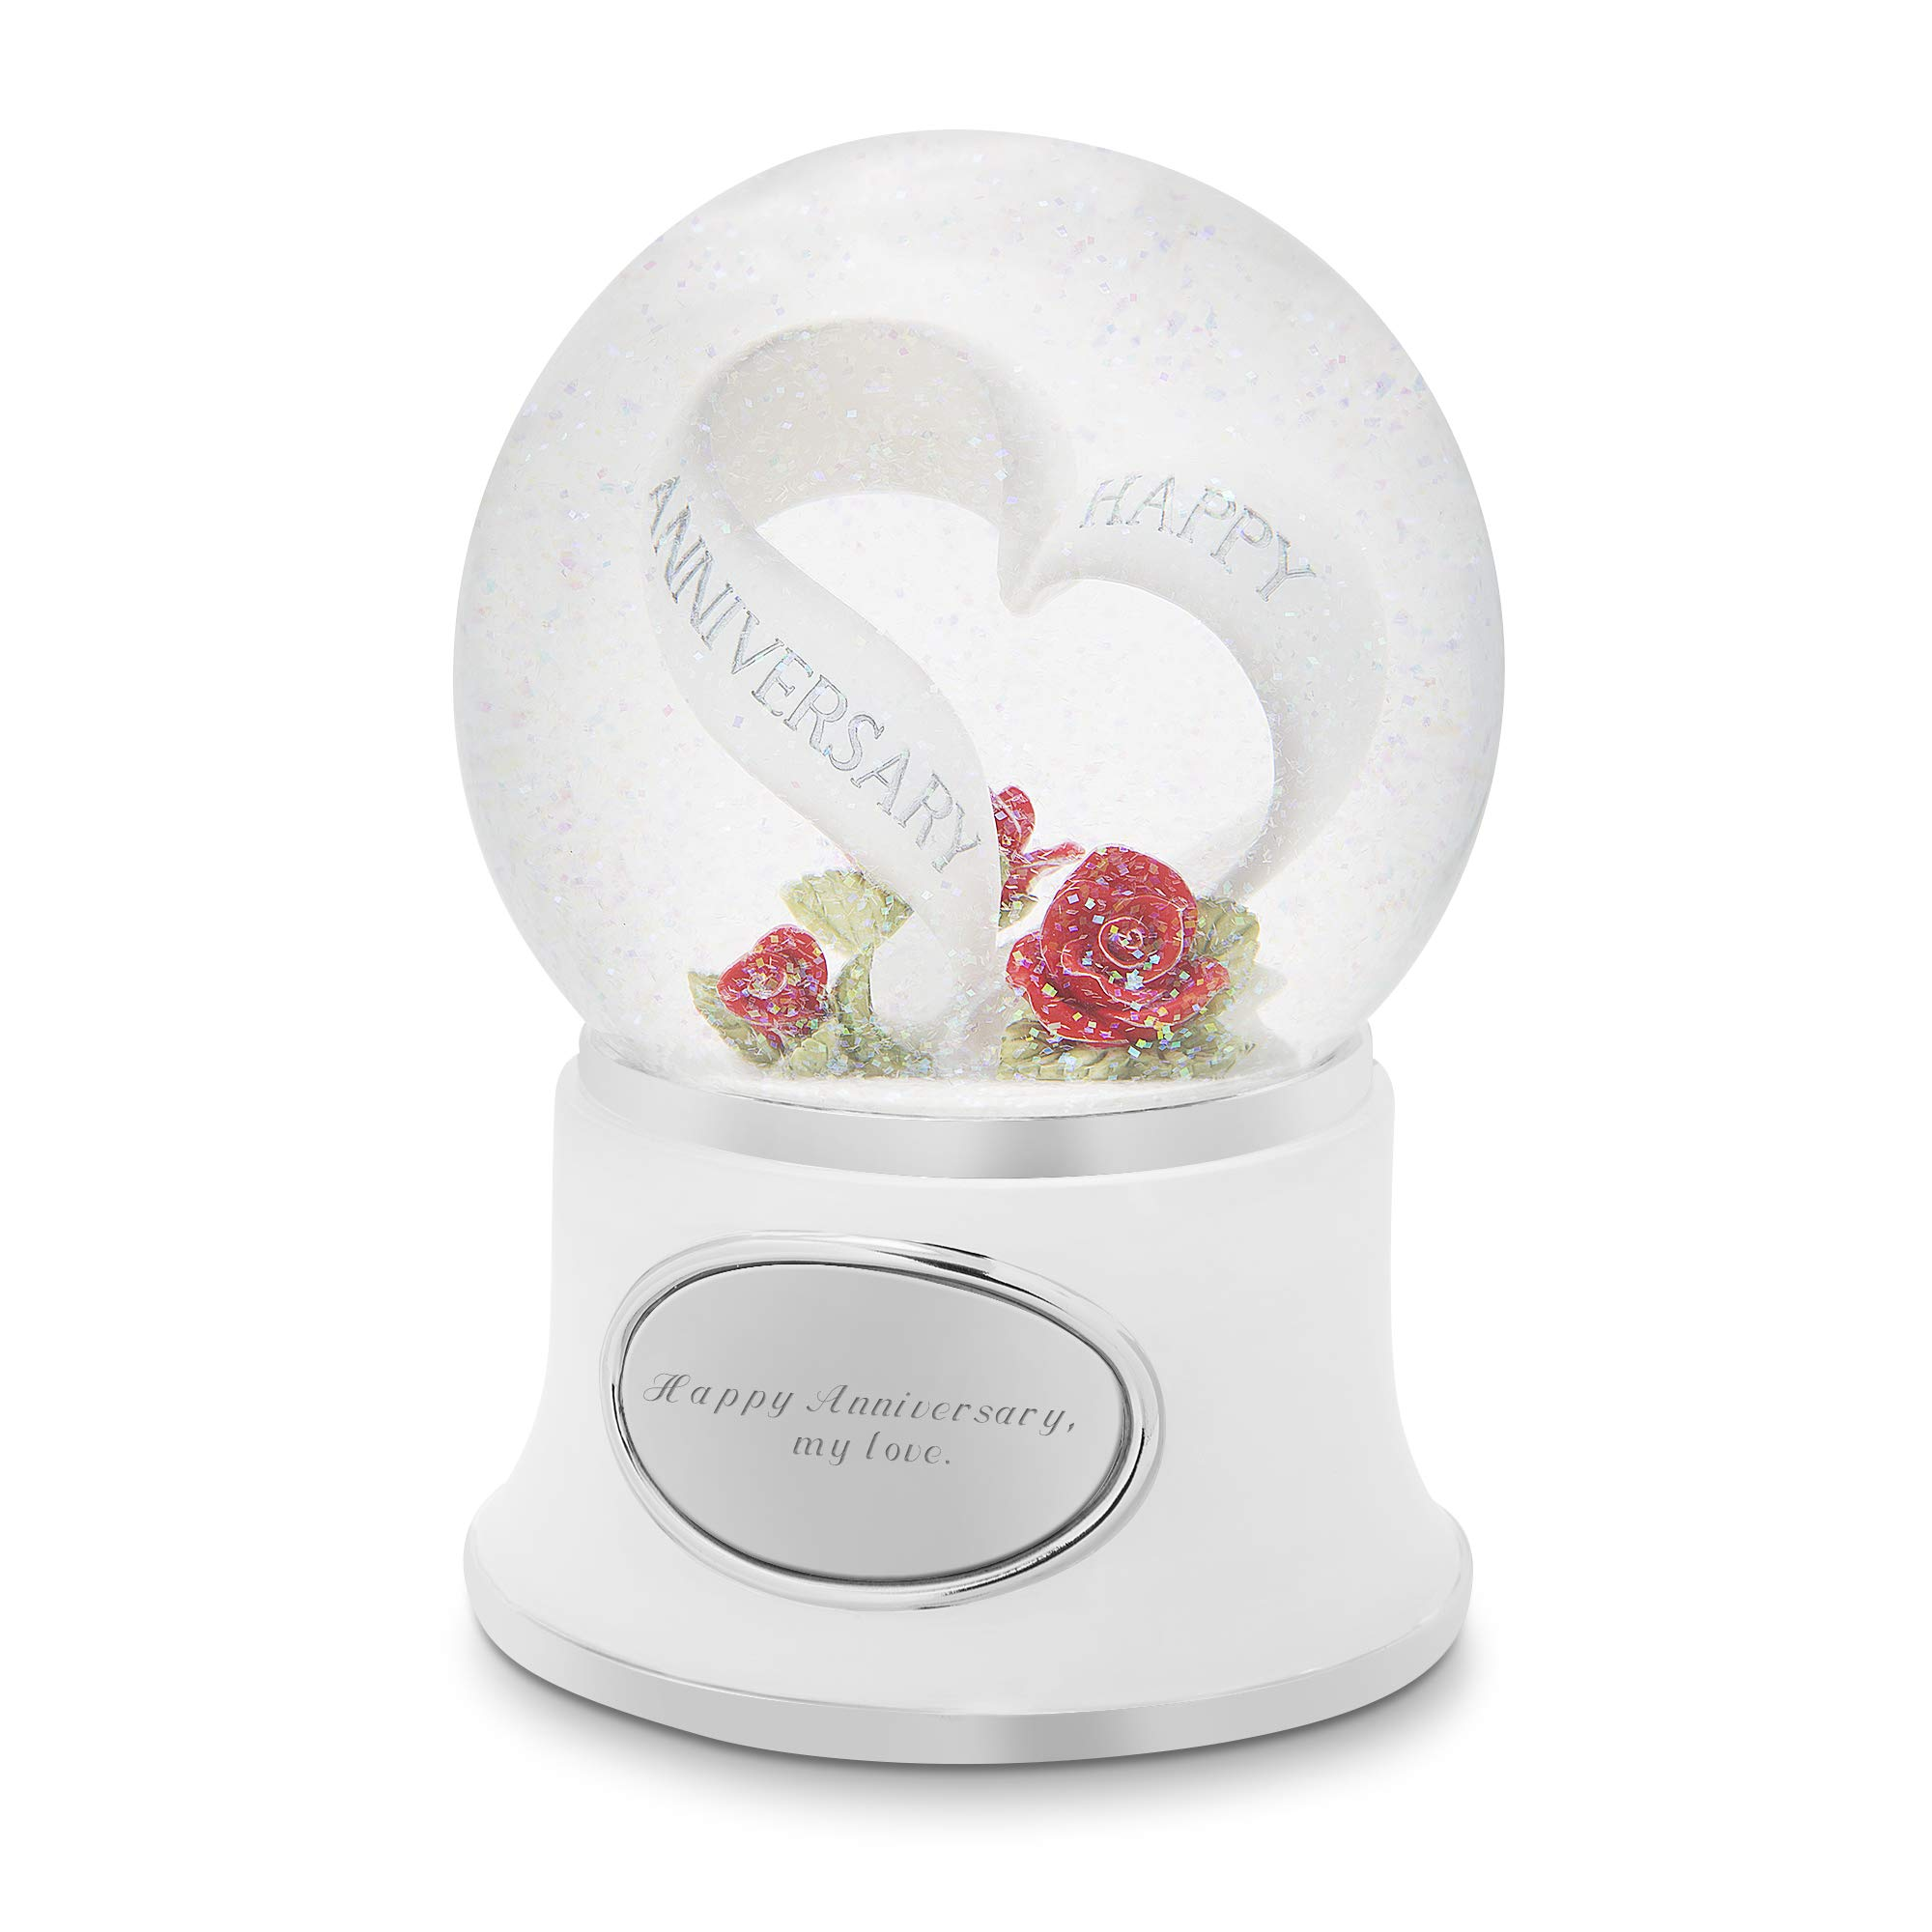 Things Remembered Personalized Anniversary Celebration Musical Snow Globe with Engraving Included by Things Remembered